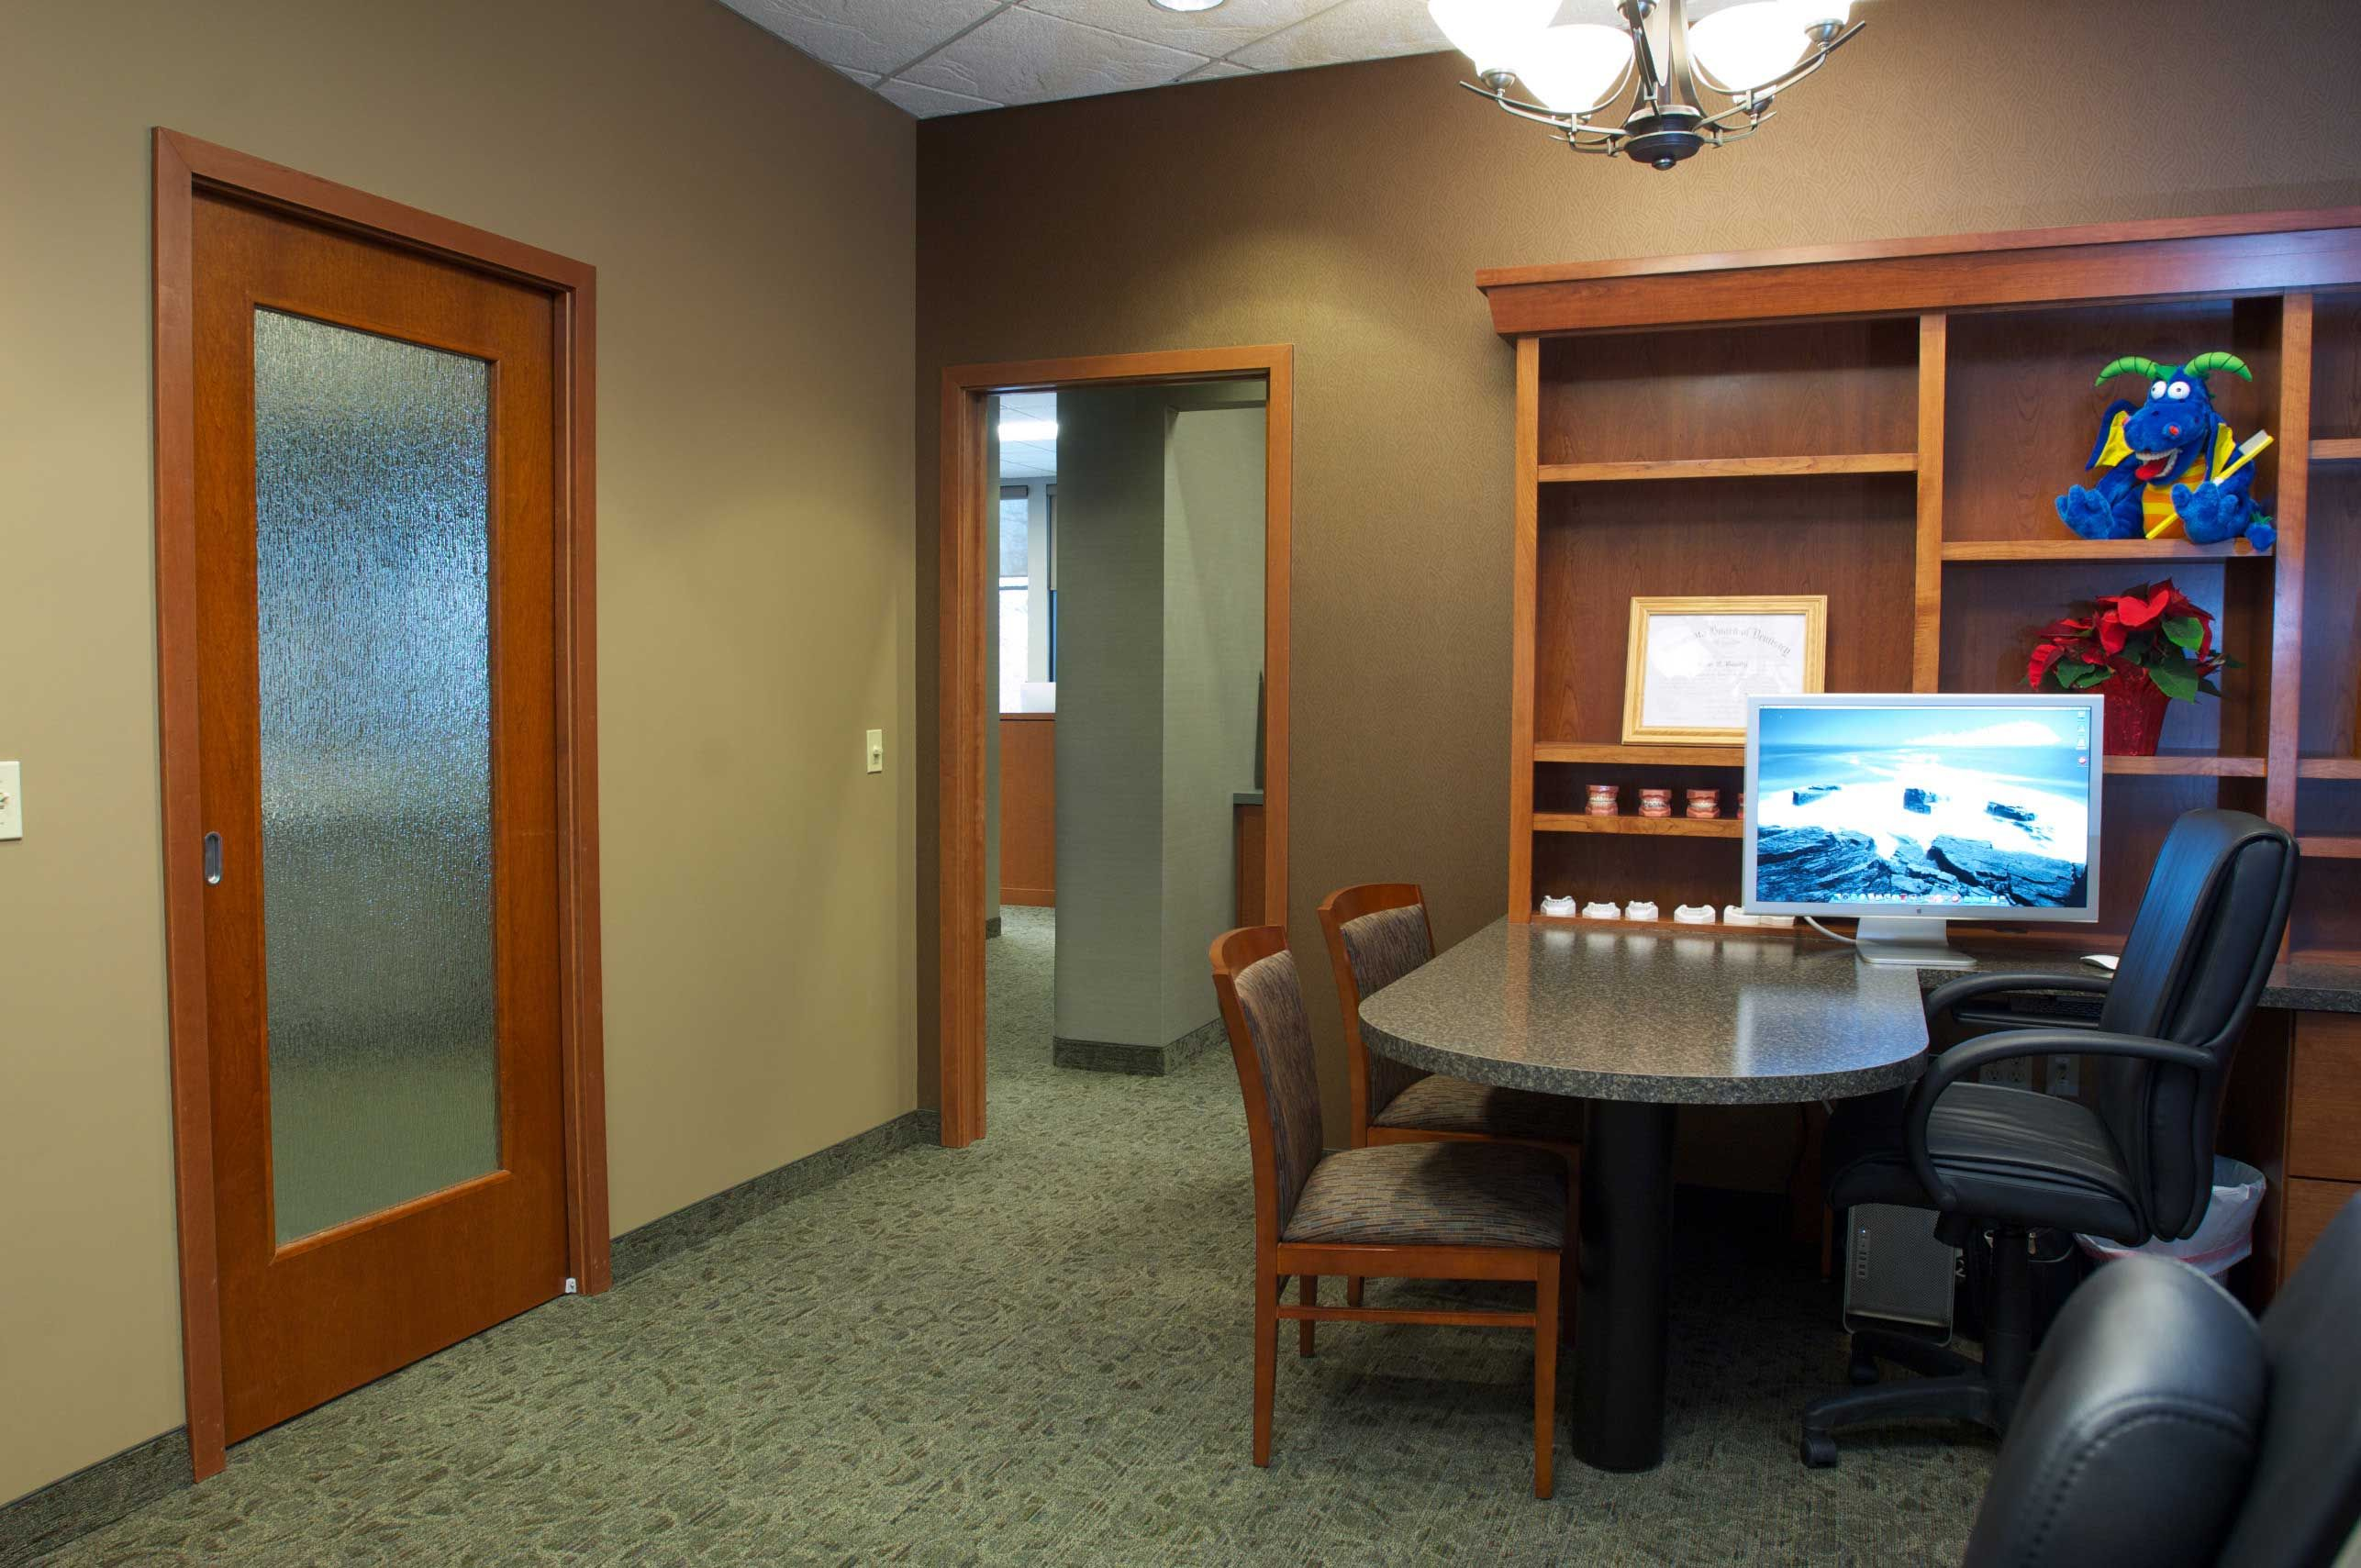 medical office interior design pictures | Orthodontic Office ...